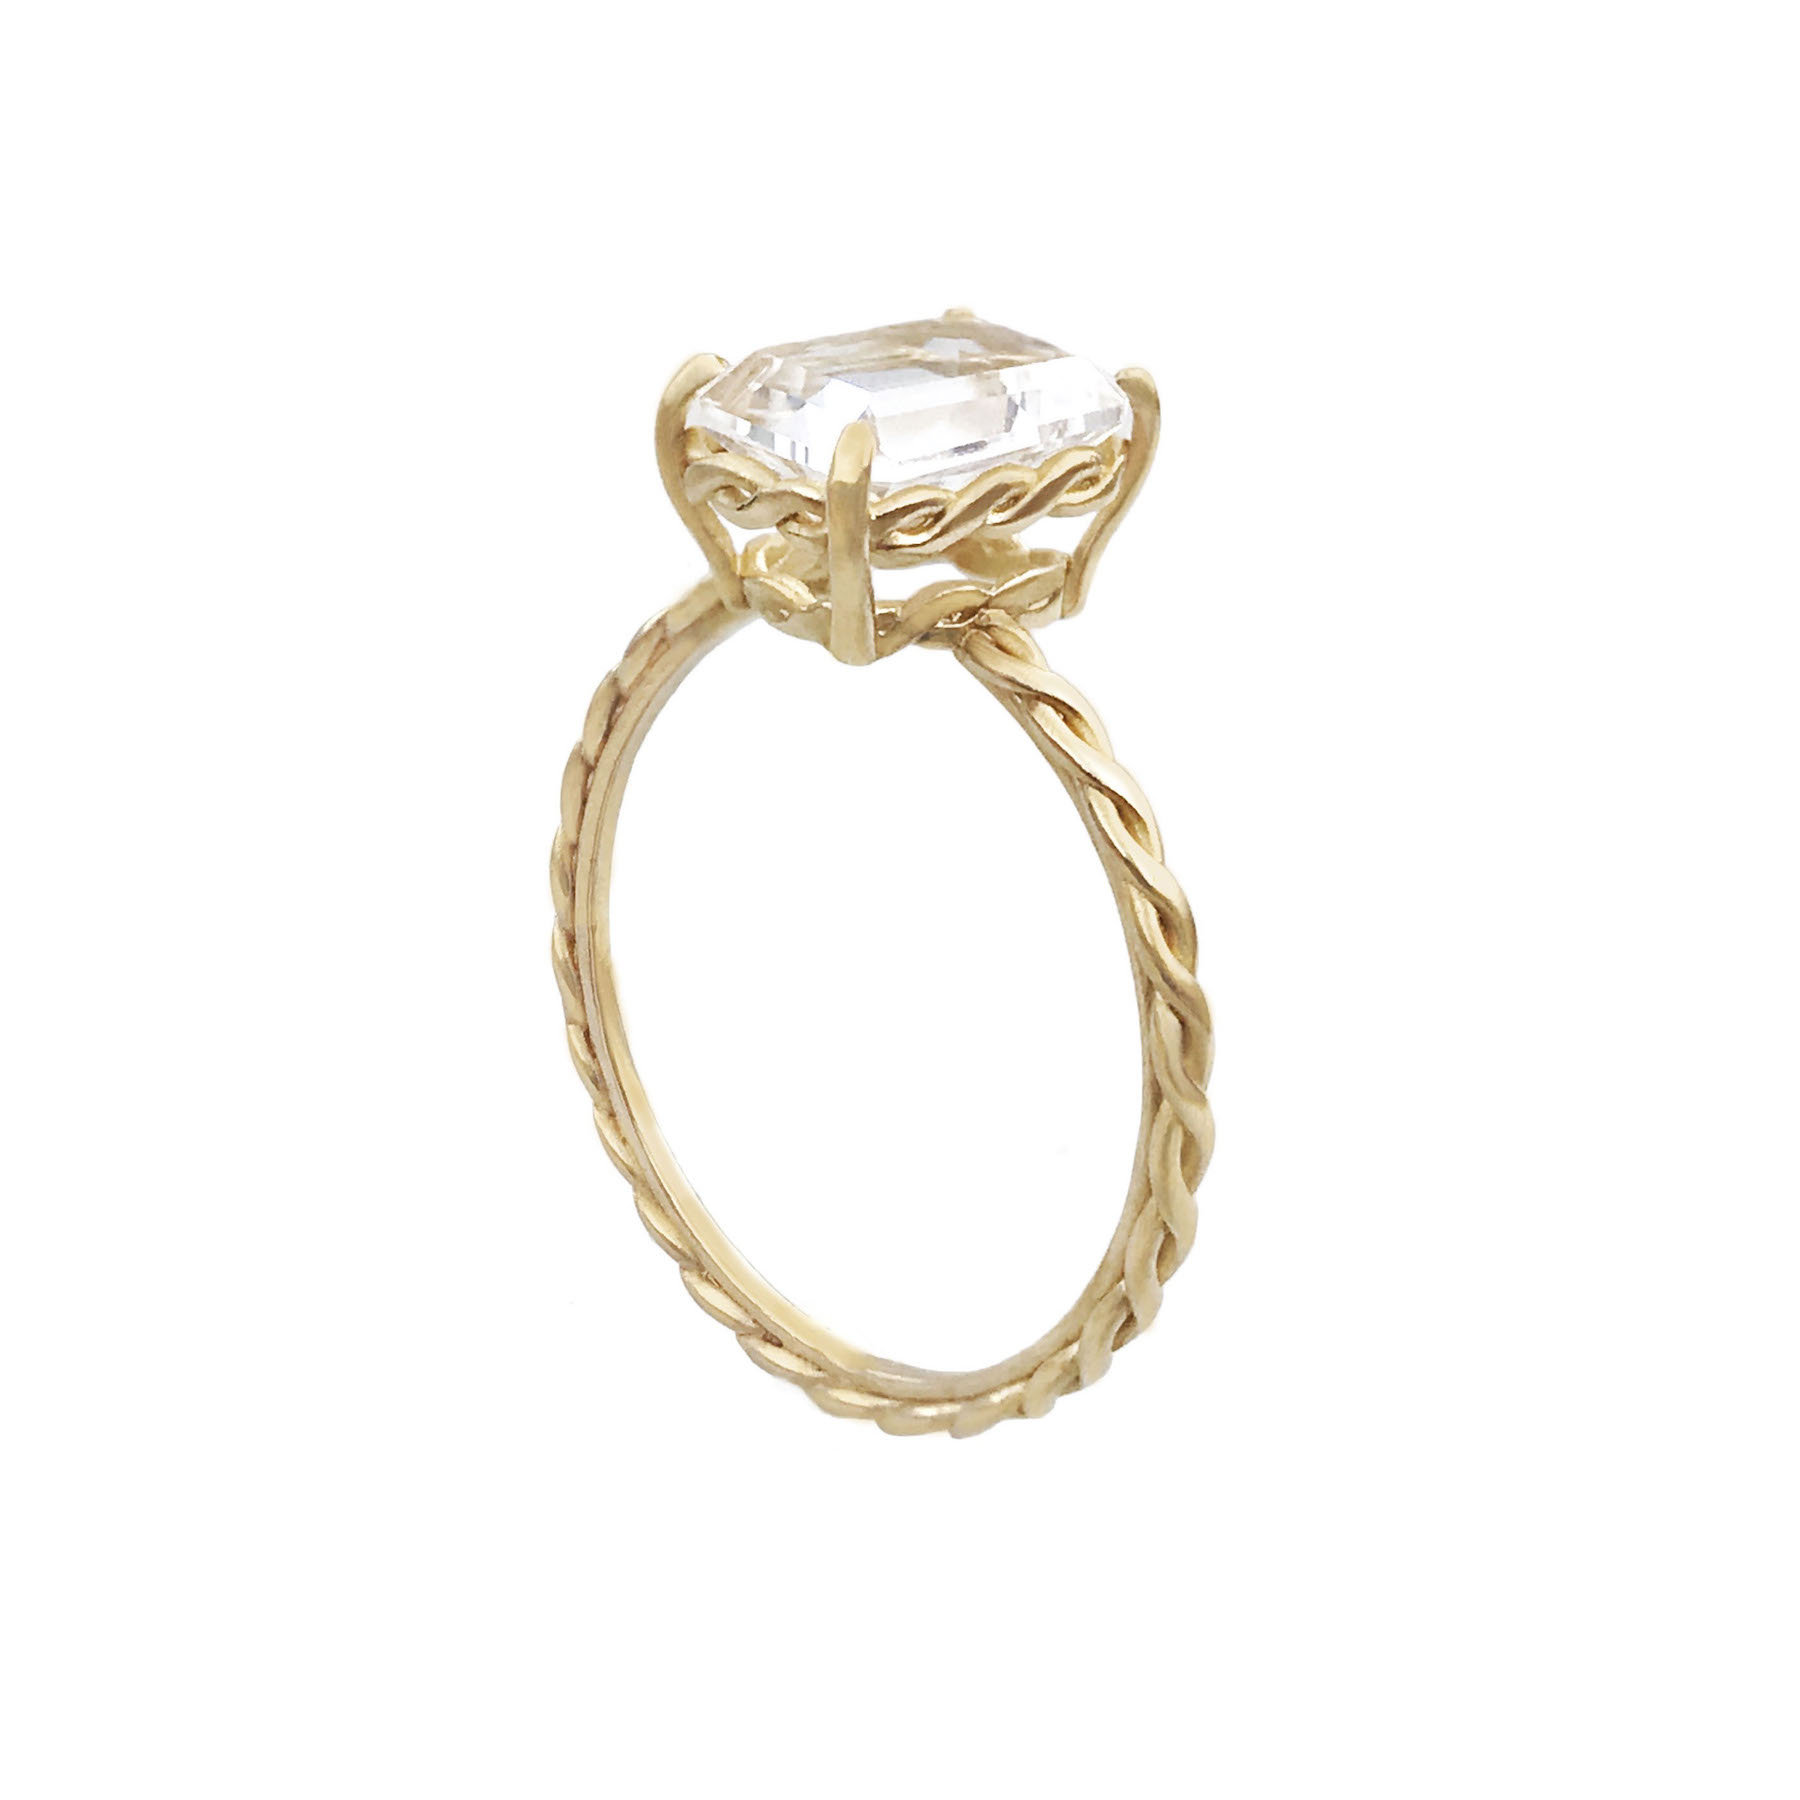 Emerald-cut clear topaz and diamond ring with signature twist setting and shank handcrafted in 14k and 18k made to order by JeweLyrie free domestic shipping_8392